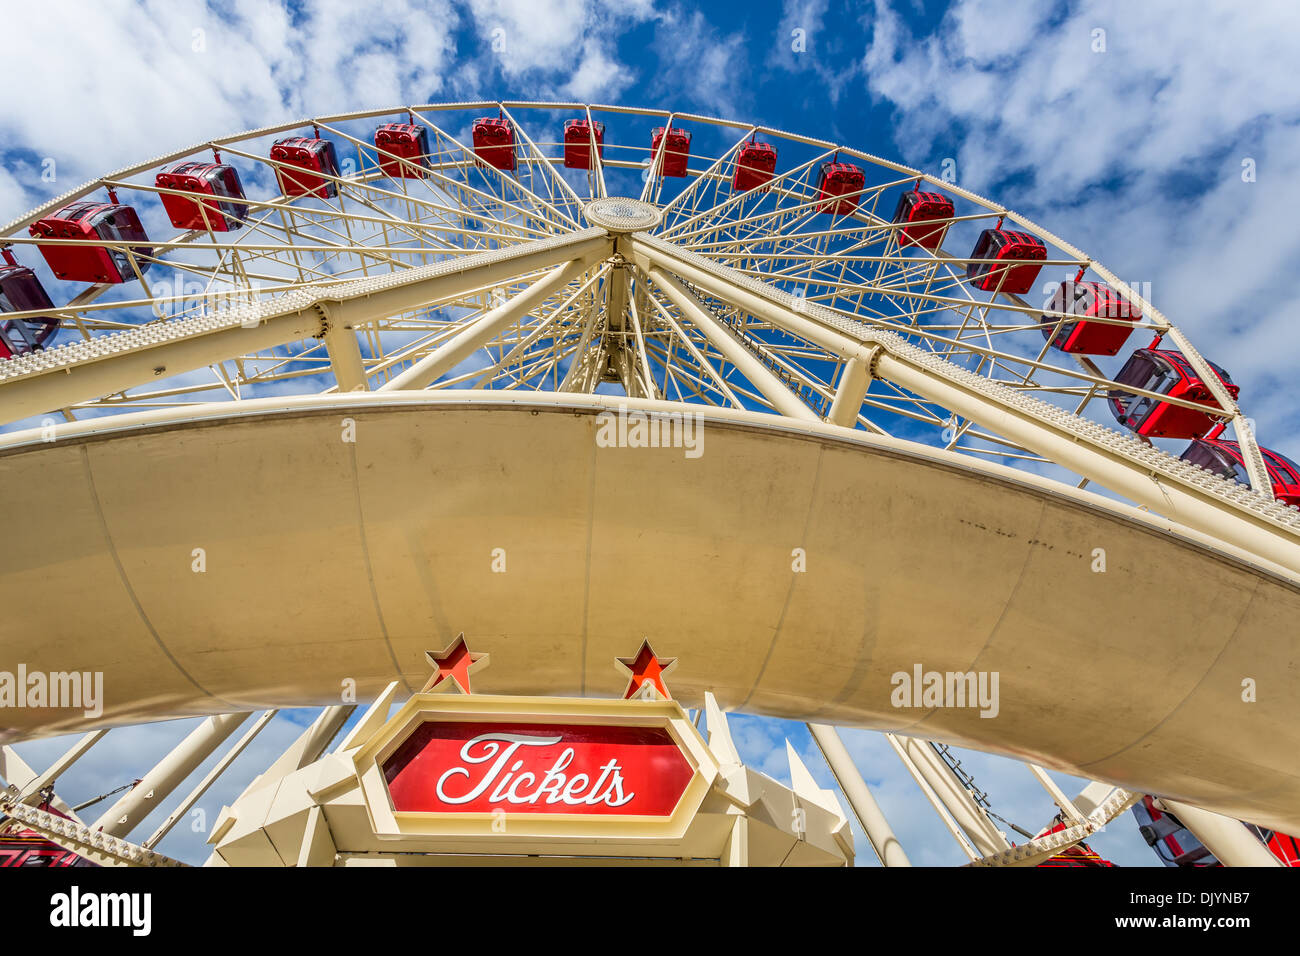 The Sky view Observation Wheel, Fremantle, Western Australia, Australia - Stock Image